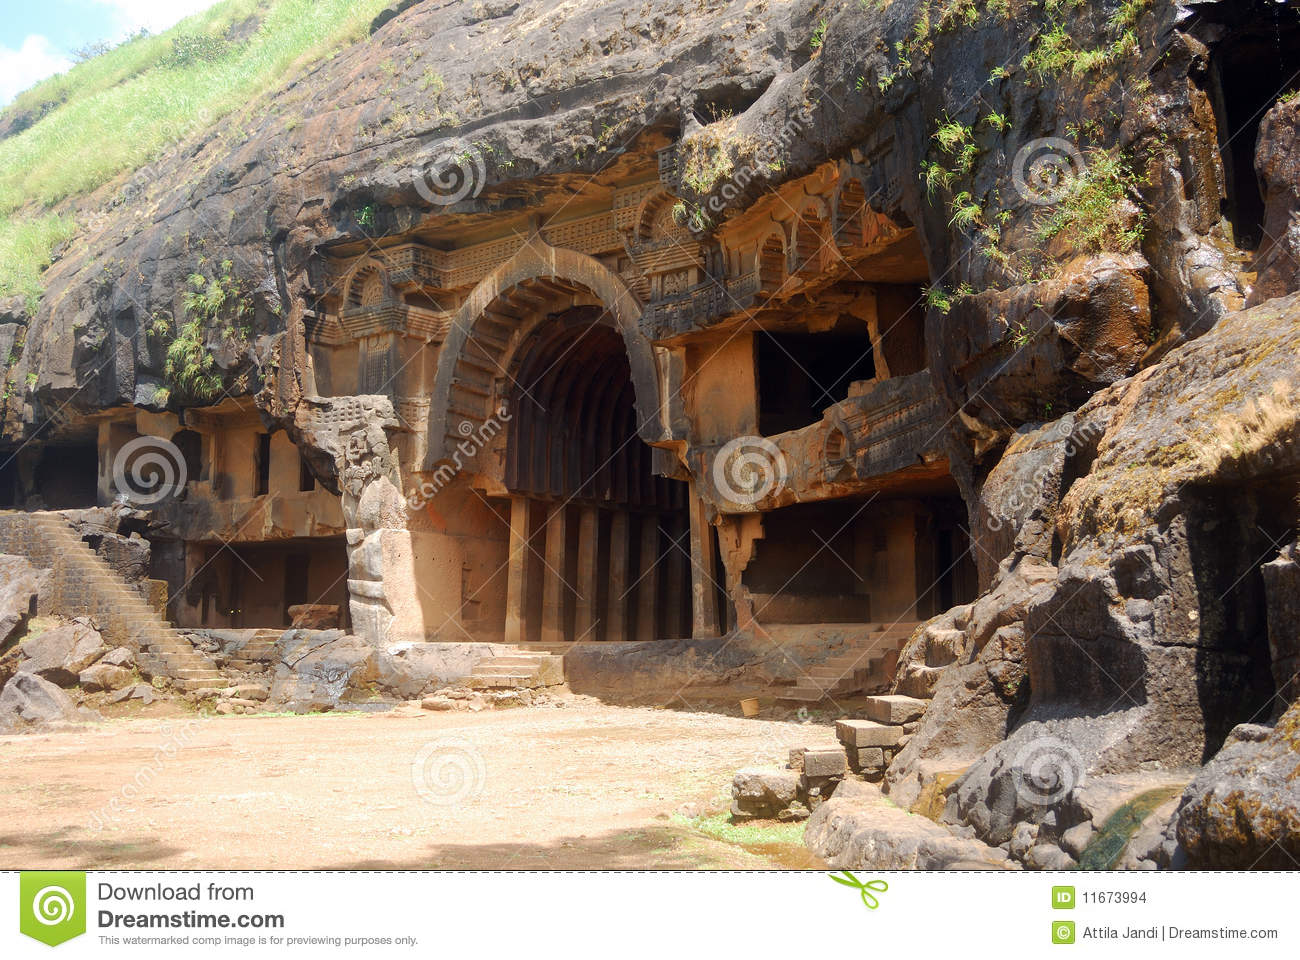 buddhist single women in cave city The ajanta caves are 29 (approximately) rock-cut buddhist cave monuments which date from the 2nd century bce to about 480 ce in aurangabad district of maharashtra state of india the caves include paintings and rock-cut sculptures described as among the finest surviving examples of ancient indian art, particularly expressive paintings that present.